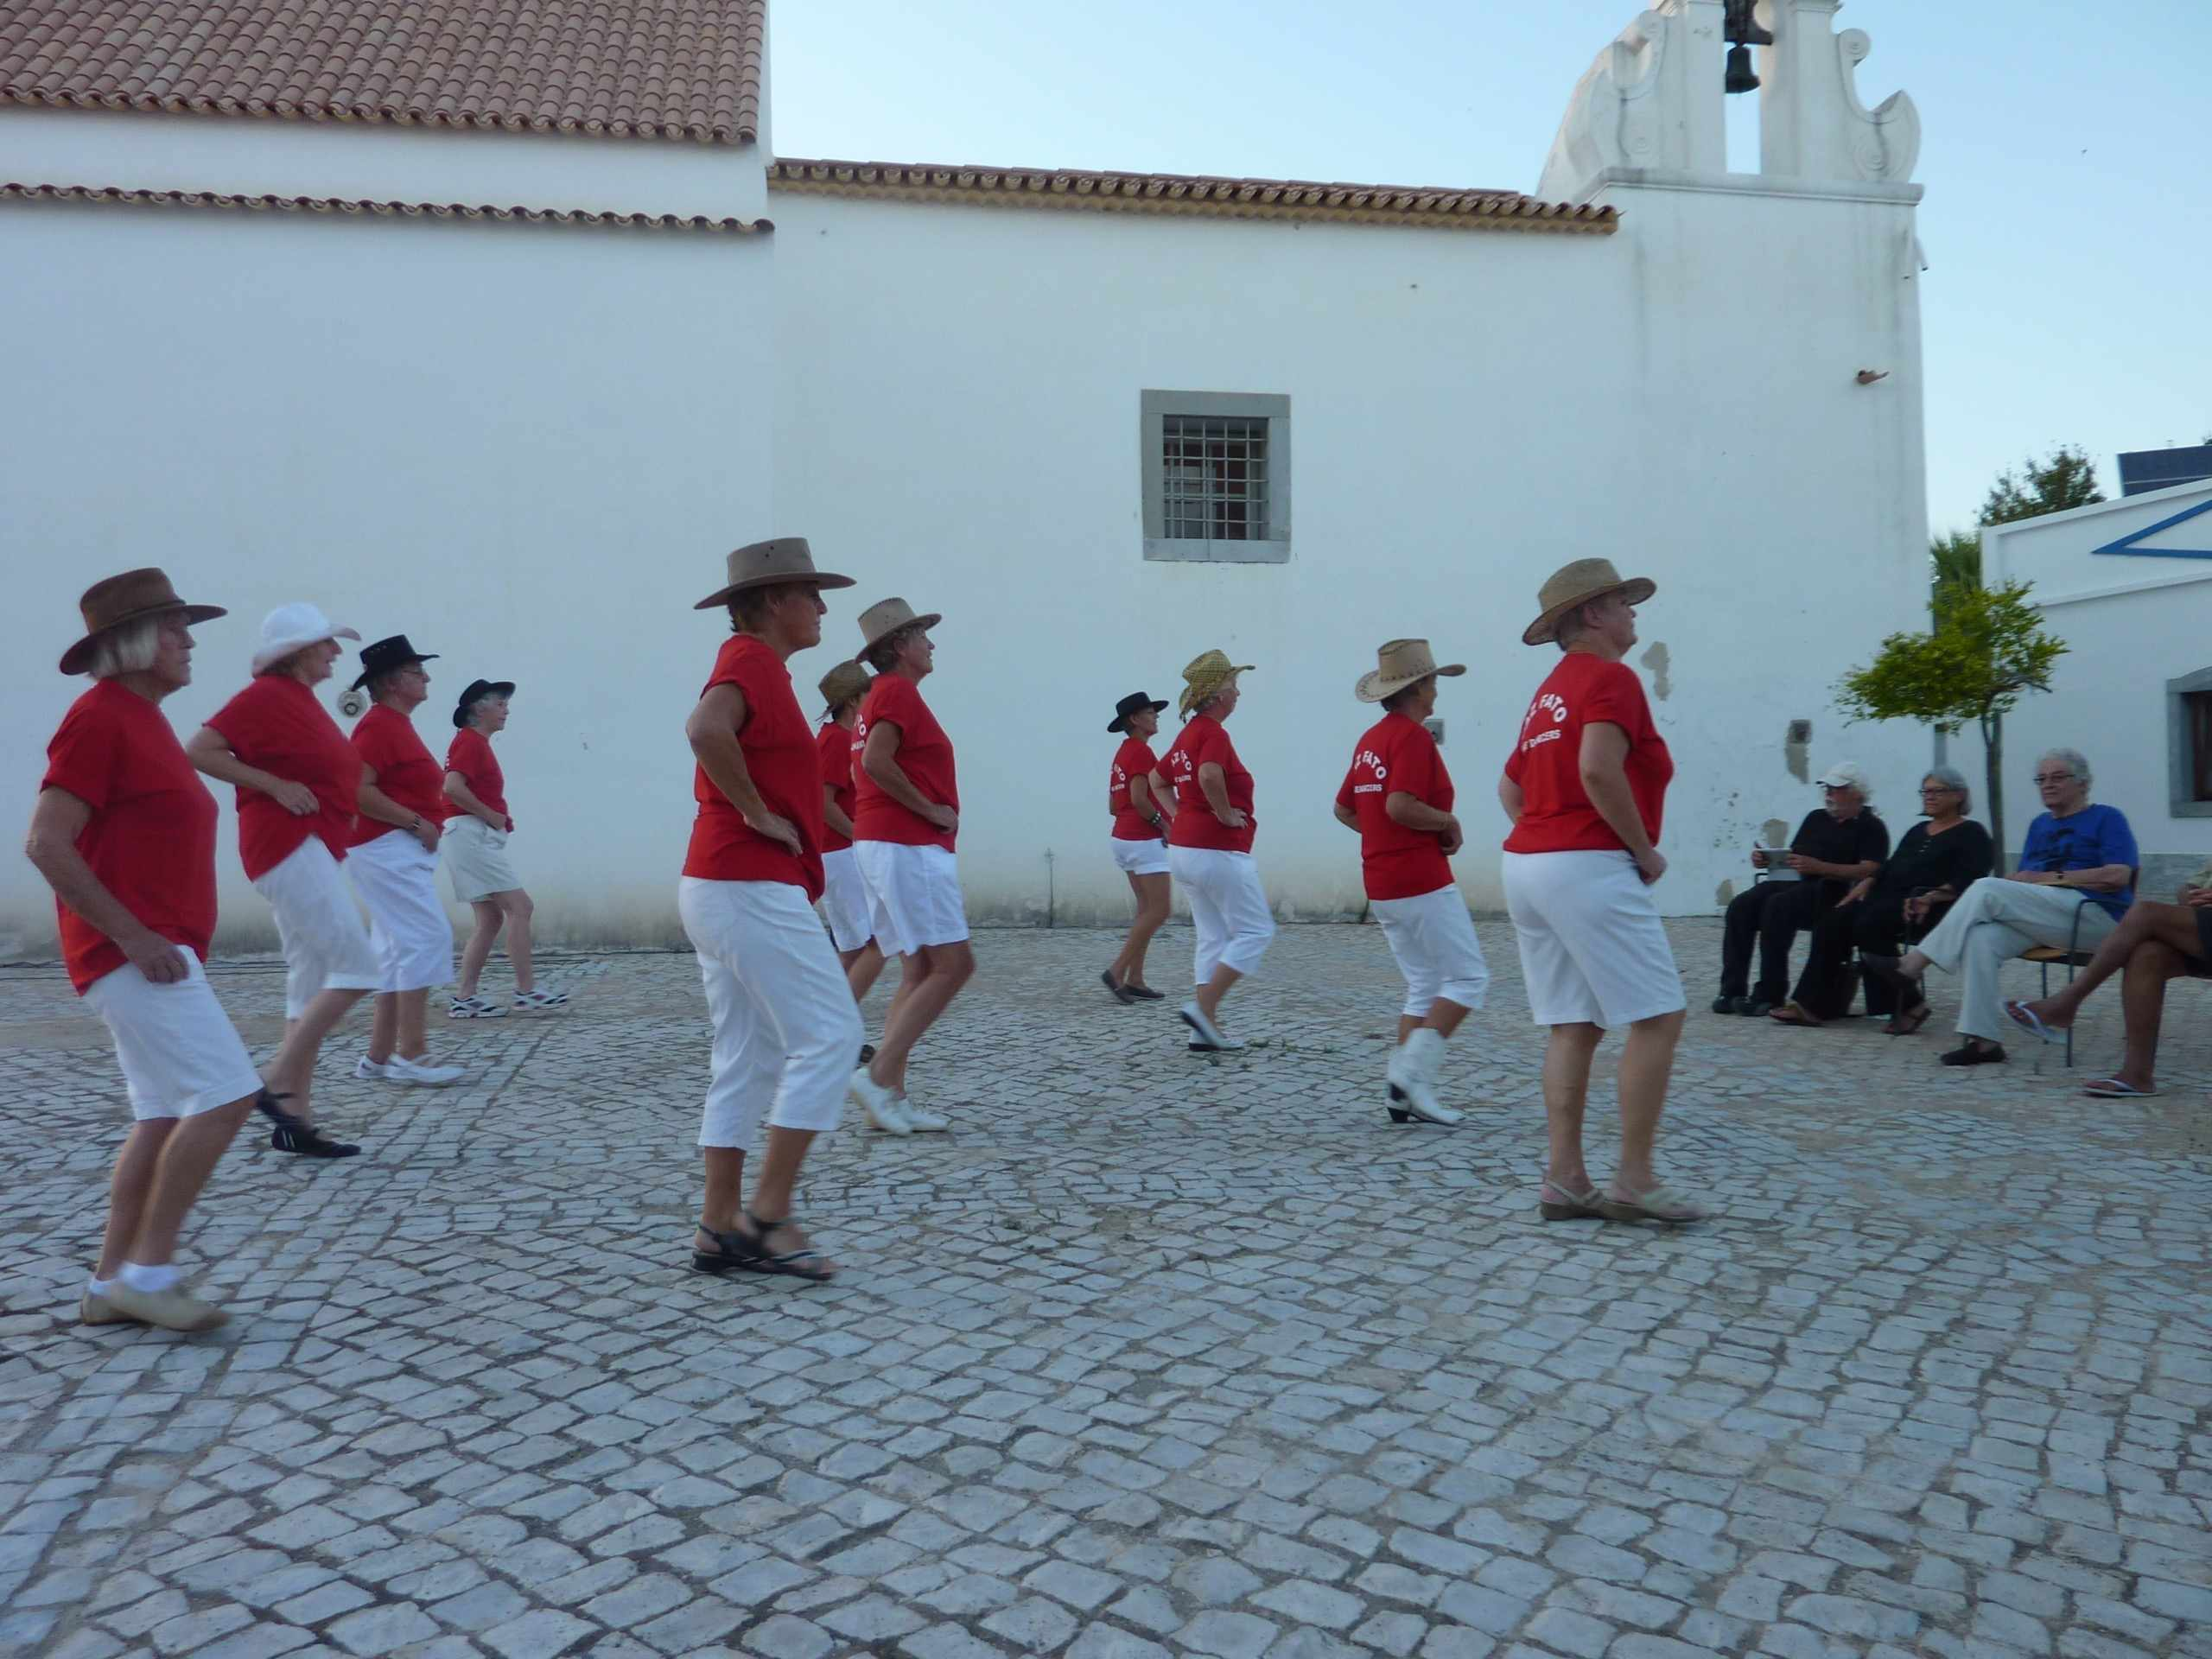 Faz Fato Line Dancers Performing in Largo do Santa Ana